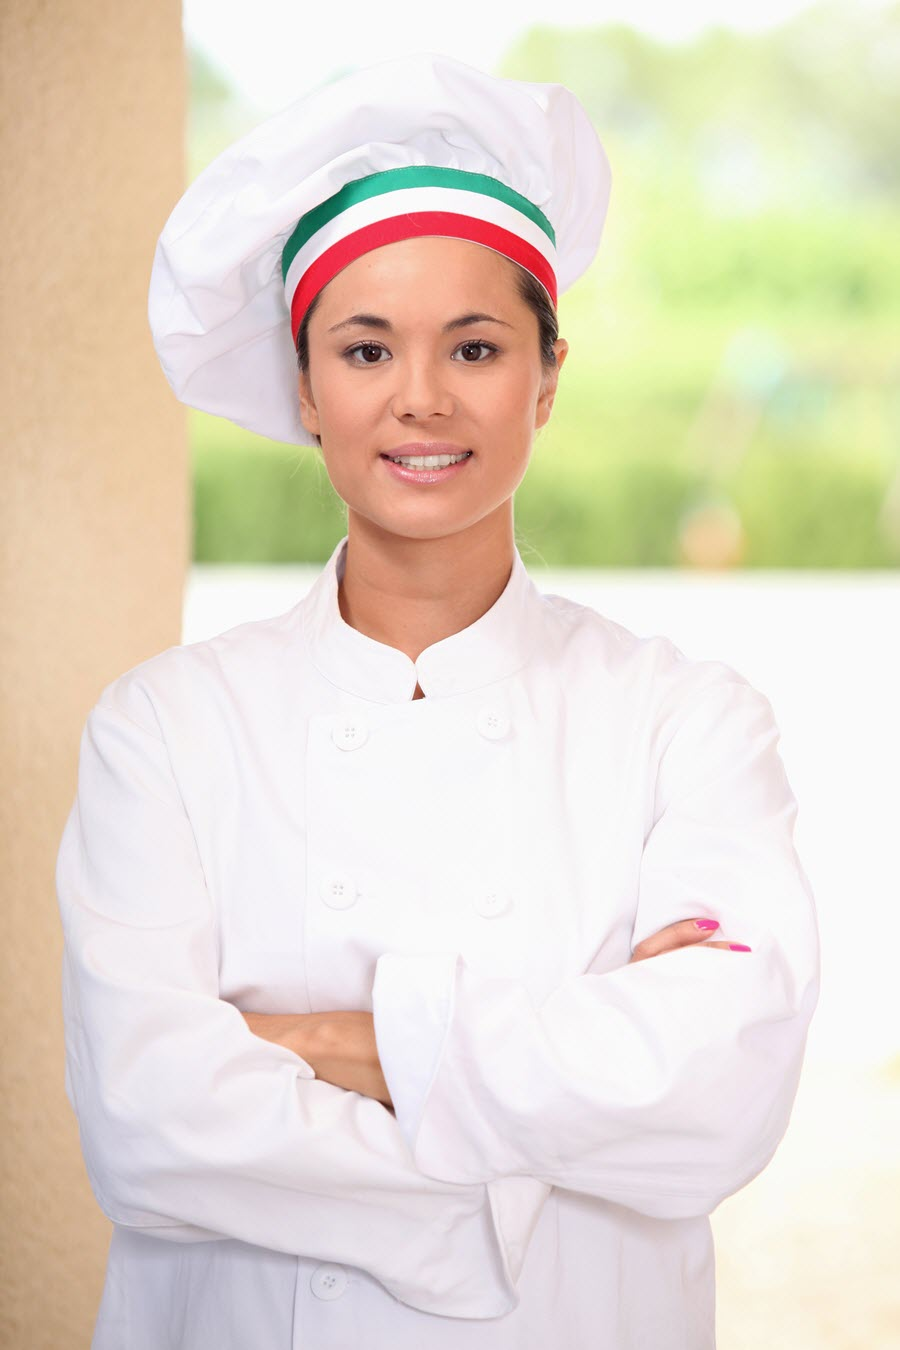 why do you want to be a chef essay